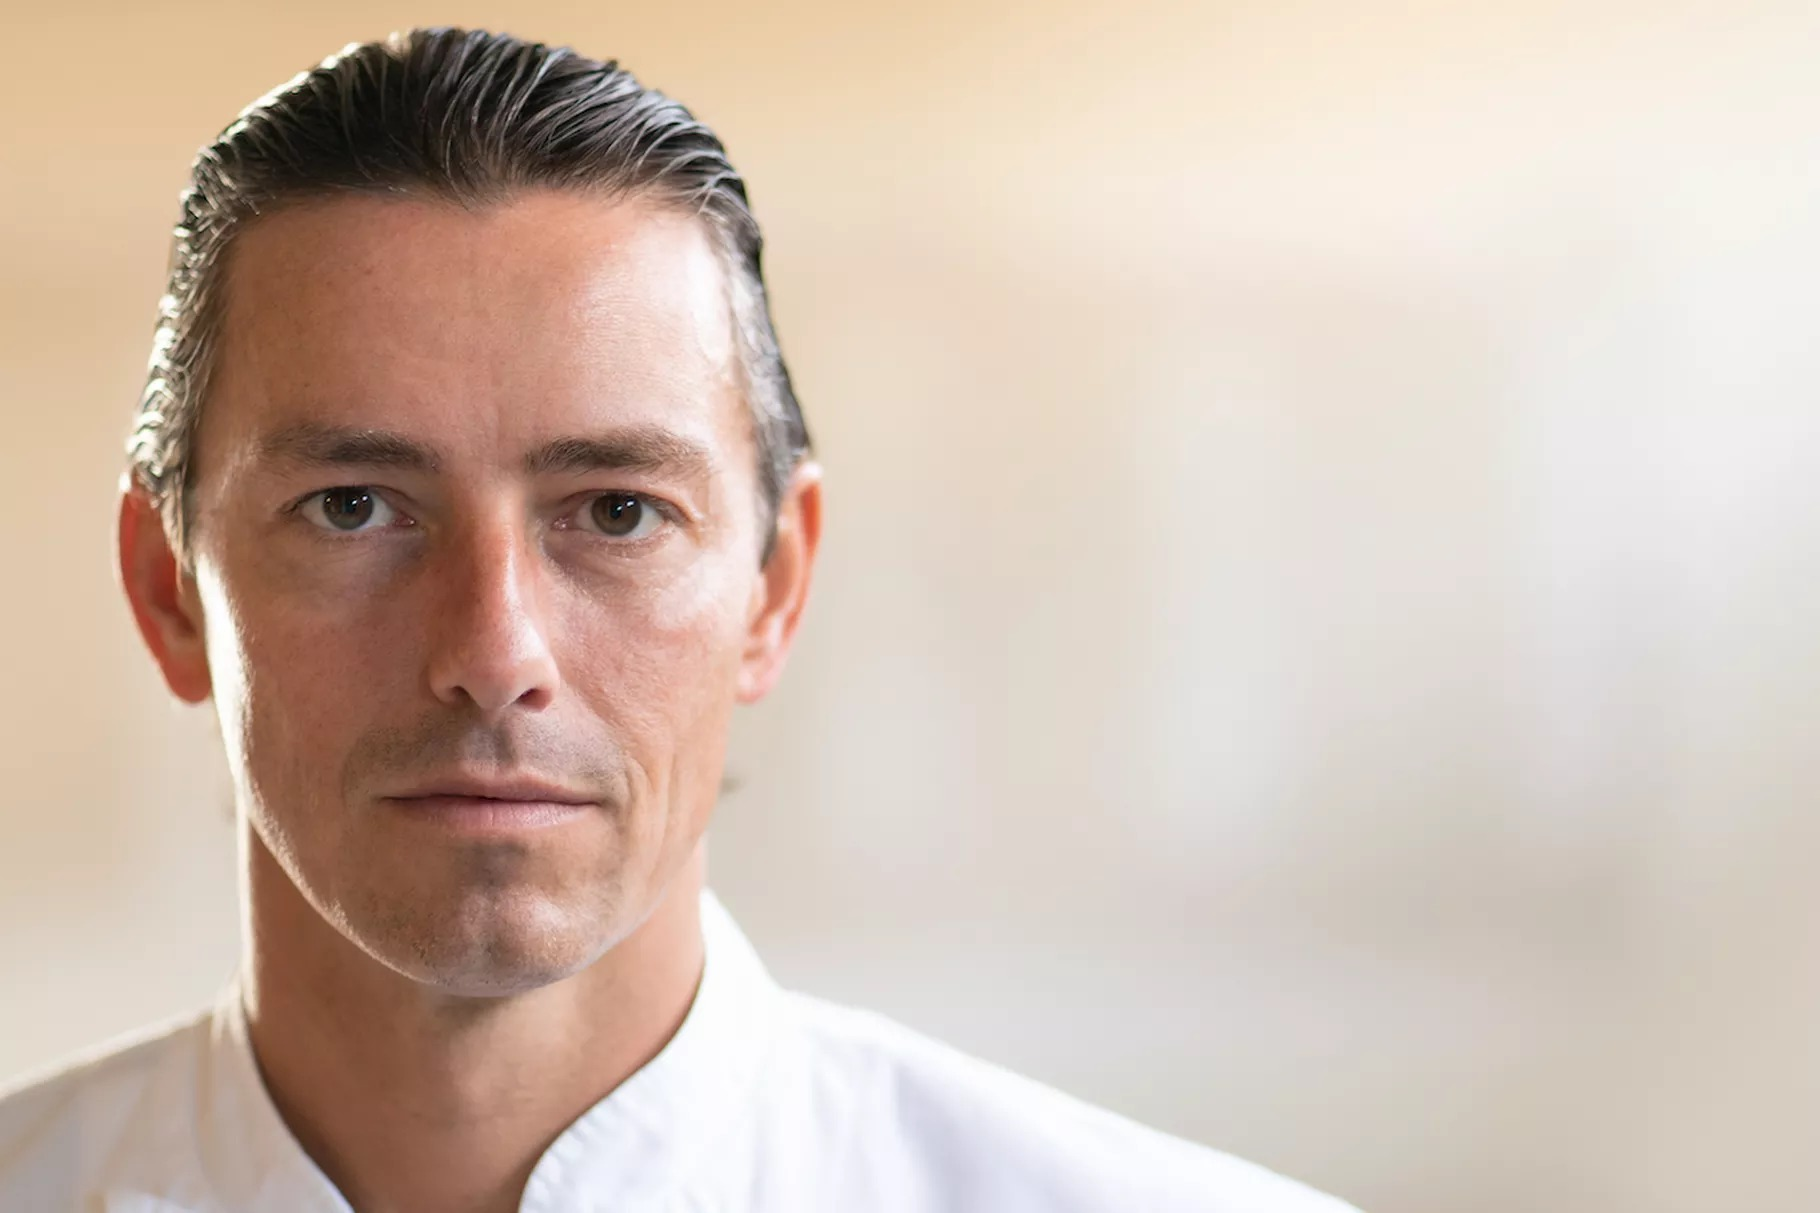 A portrait photo of Curtis Duffy, a white man, in a white chef's coat.